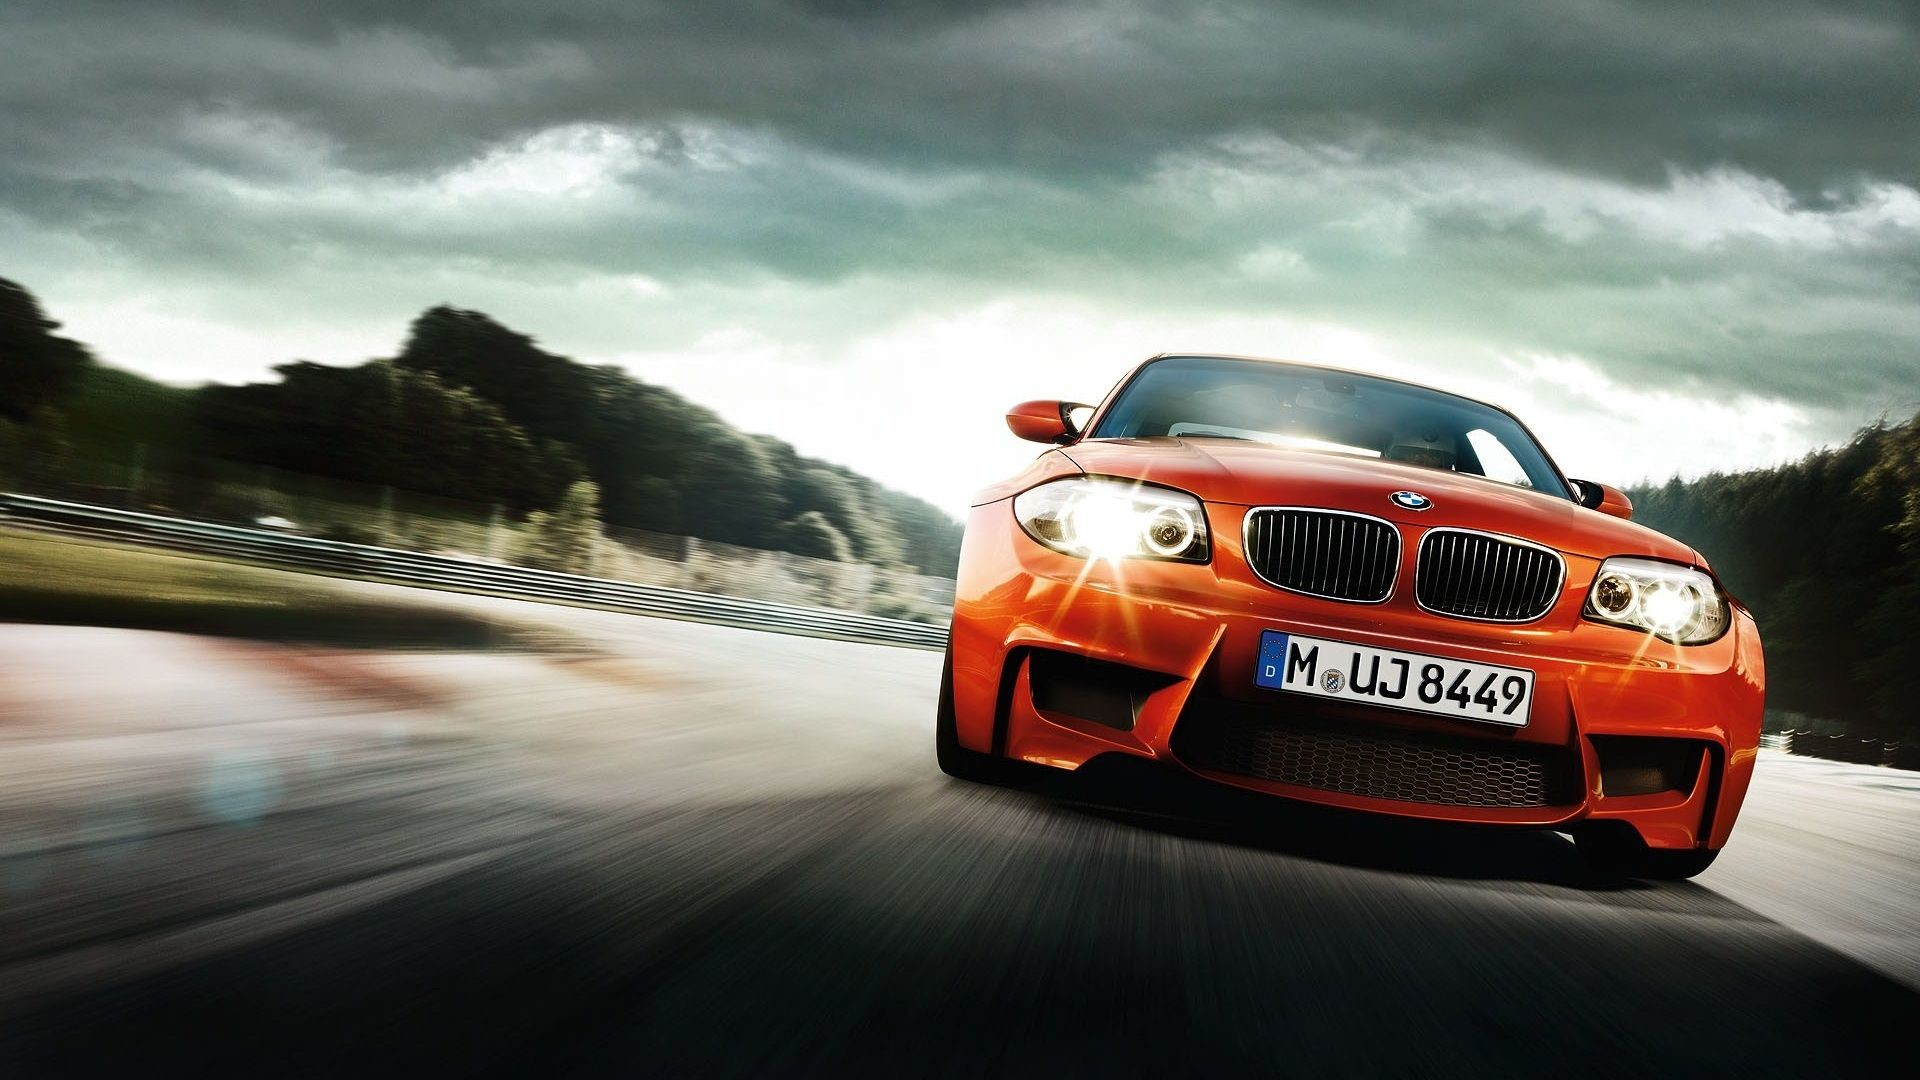 Excellent Car Live Wallpaper For Pc To Images N5fl And Car Live Wallpaper  New At Gallery